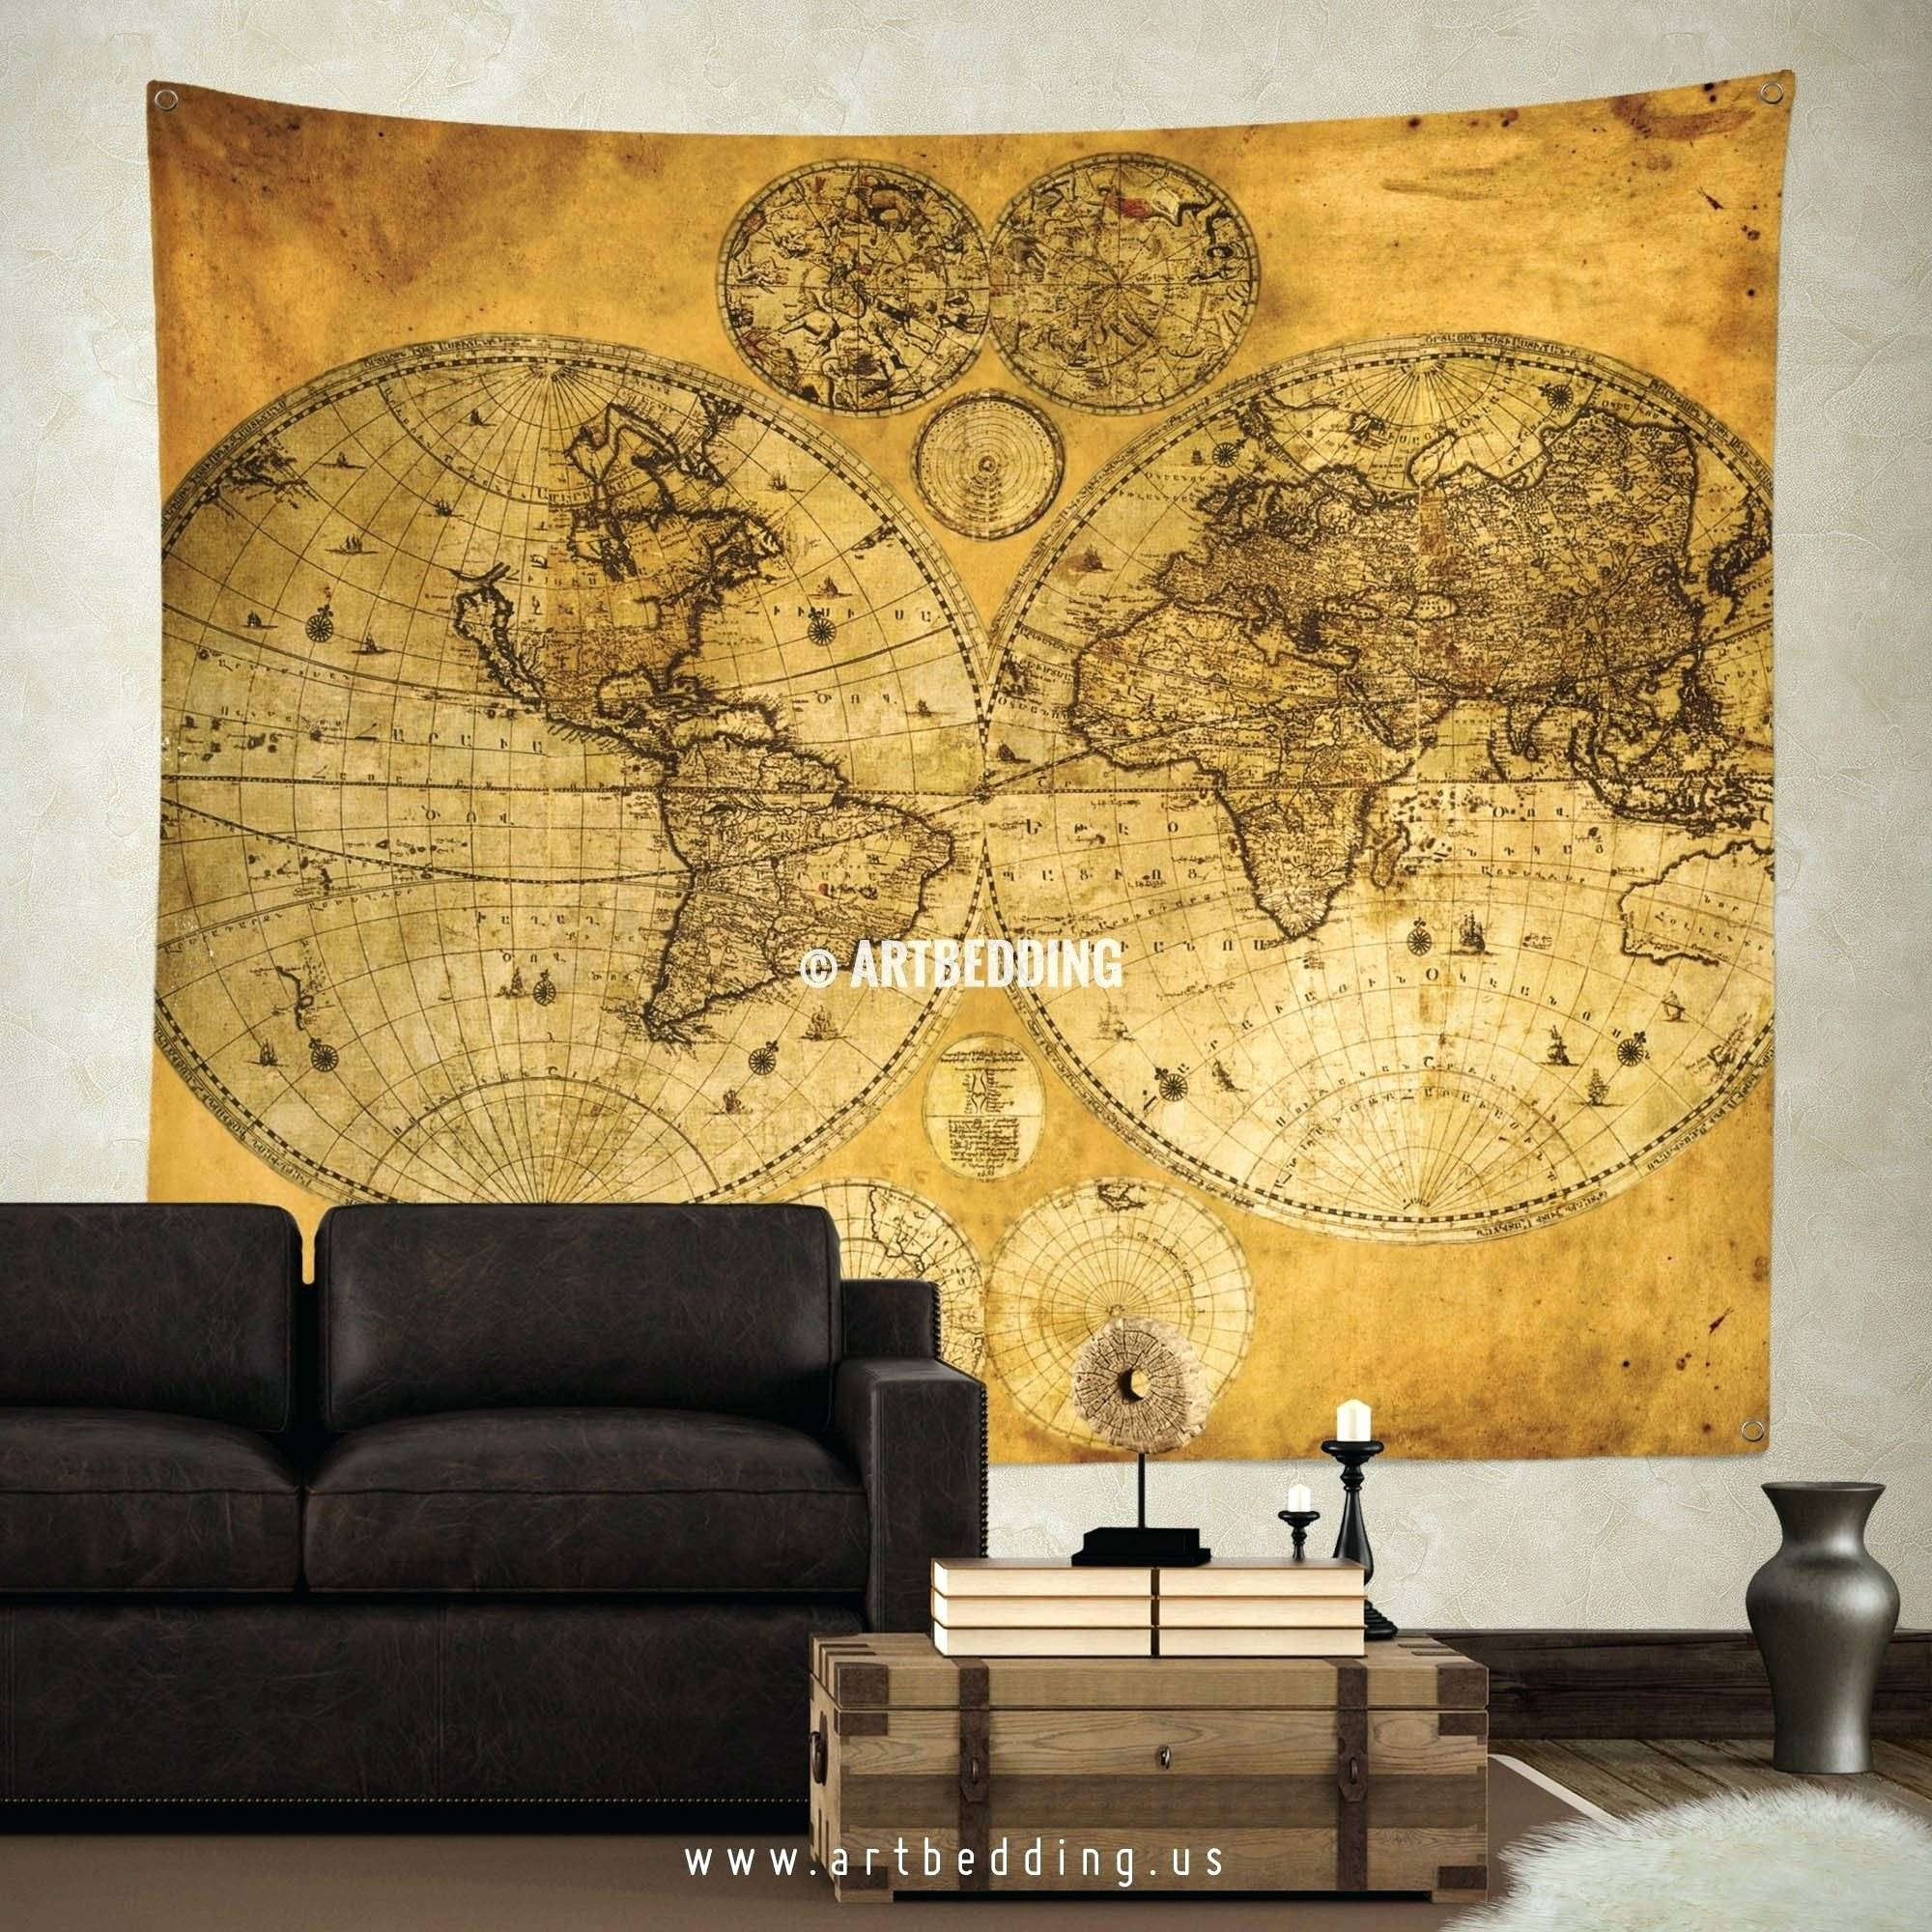 Wall Arts ~ Vintage London Map Wall Art Old World Map Art Canvas Intended For Most Popular World Map Wall Artwork (View 14 of 20)